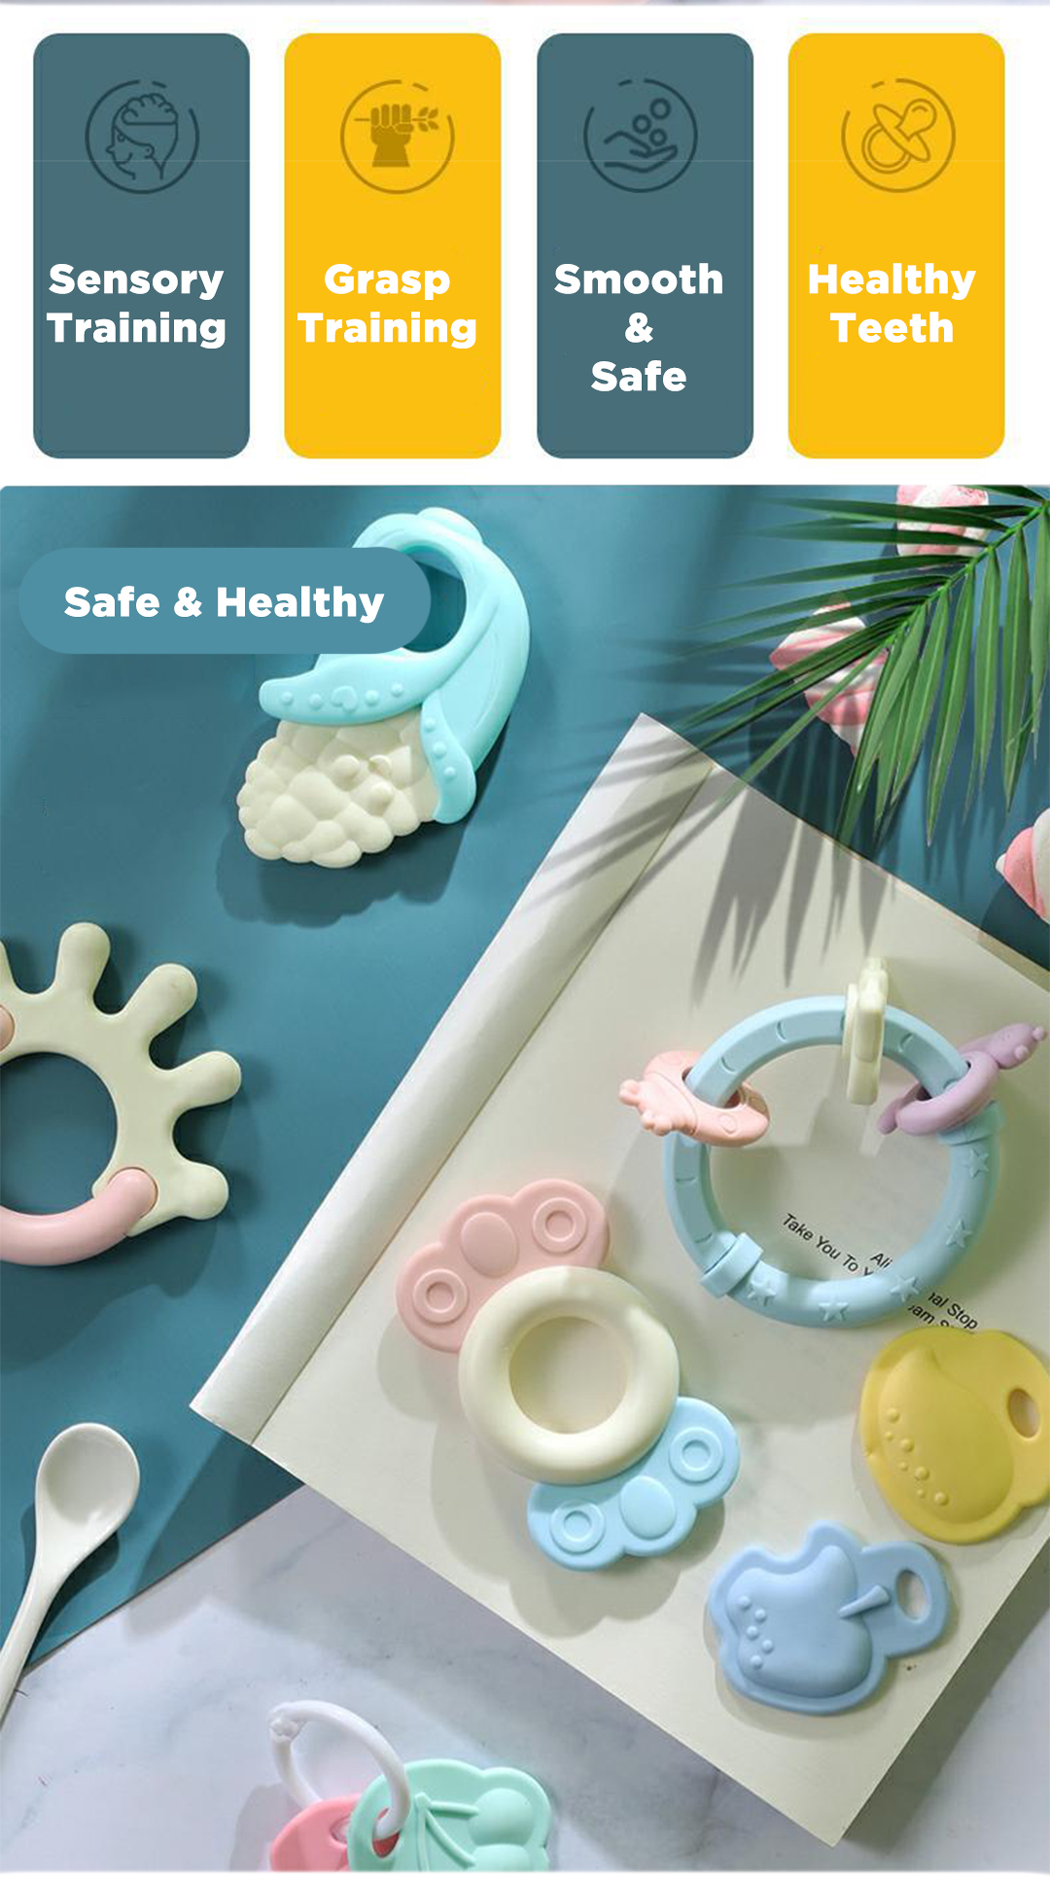 Iguana Online BPA Free Lead Free Safe Baby Soft Rattle Teether Toys for Newborn RT78912